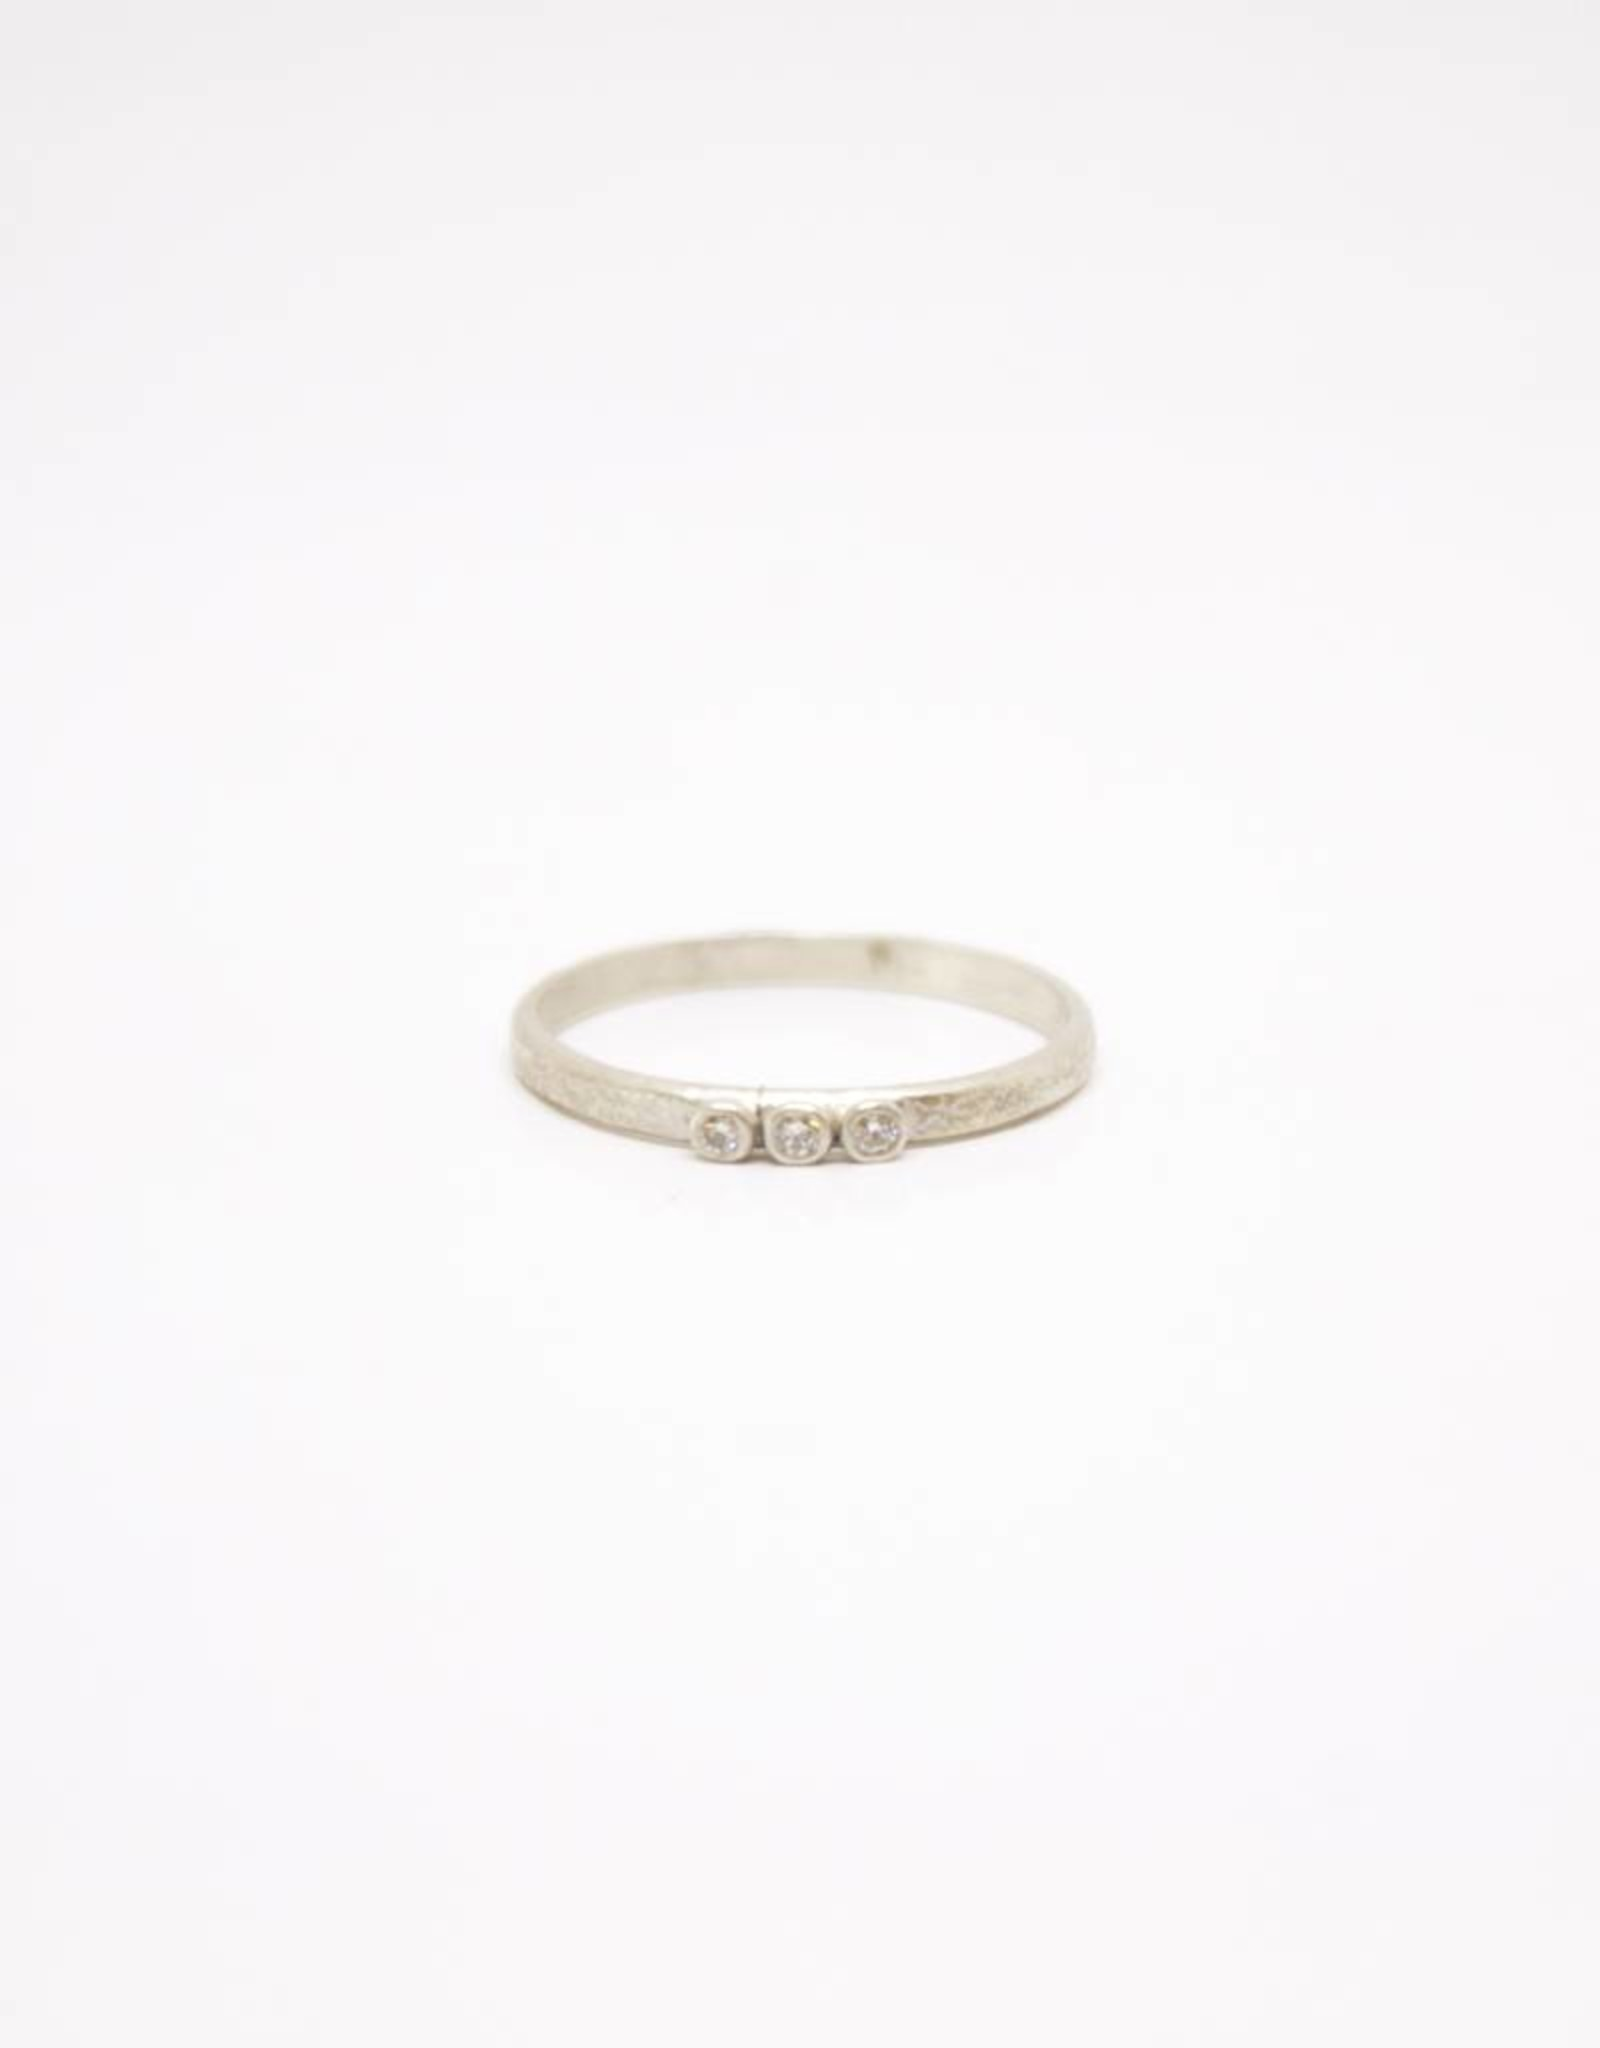 Sarah Swell Weathered Stacking Ring - 3 Diamond